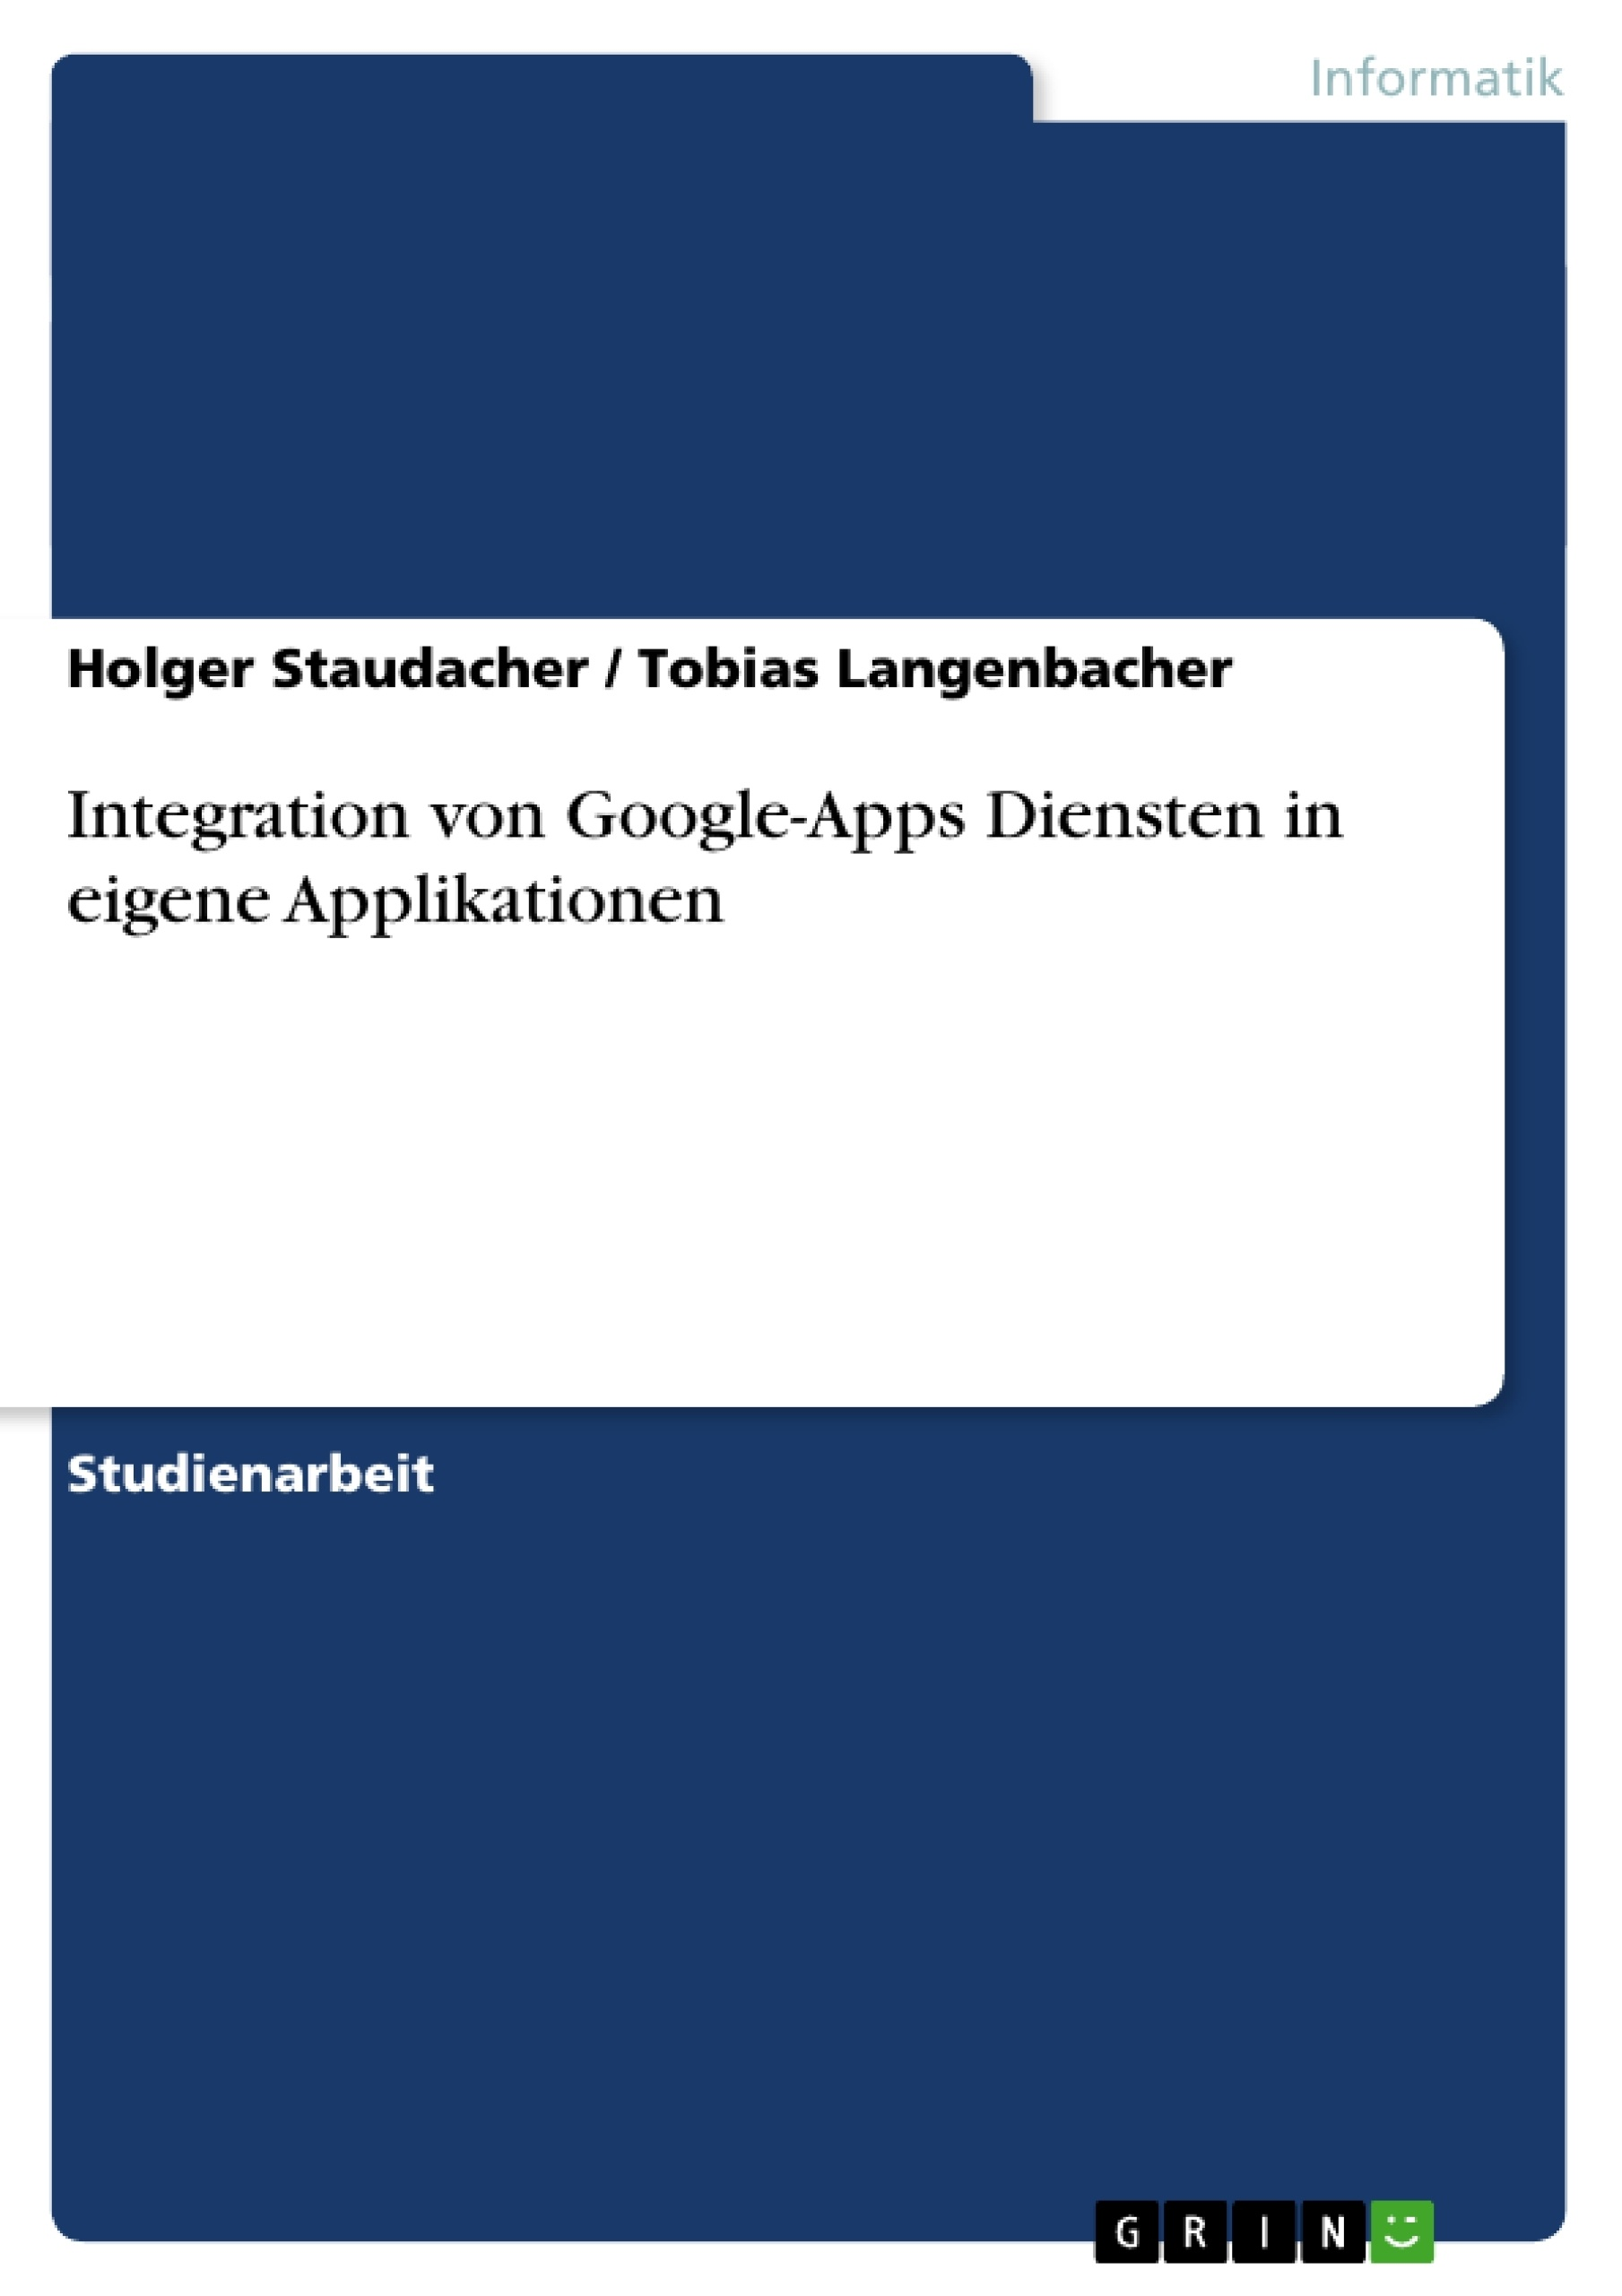 Titel: Integration von Google-Apps Diensten in eigene Applikationen